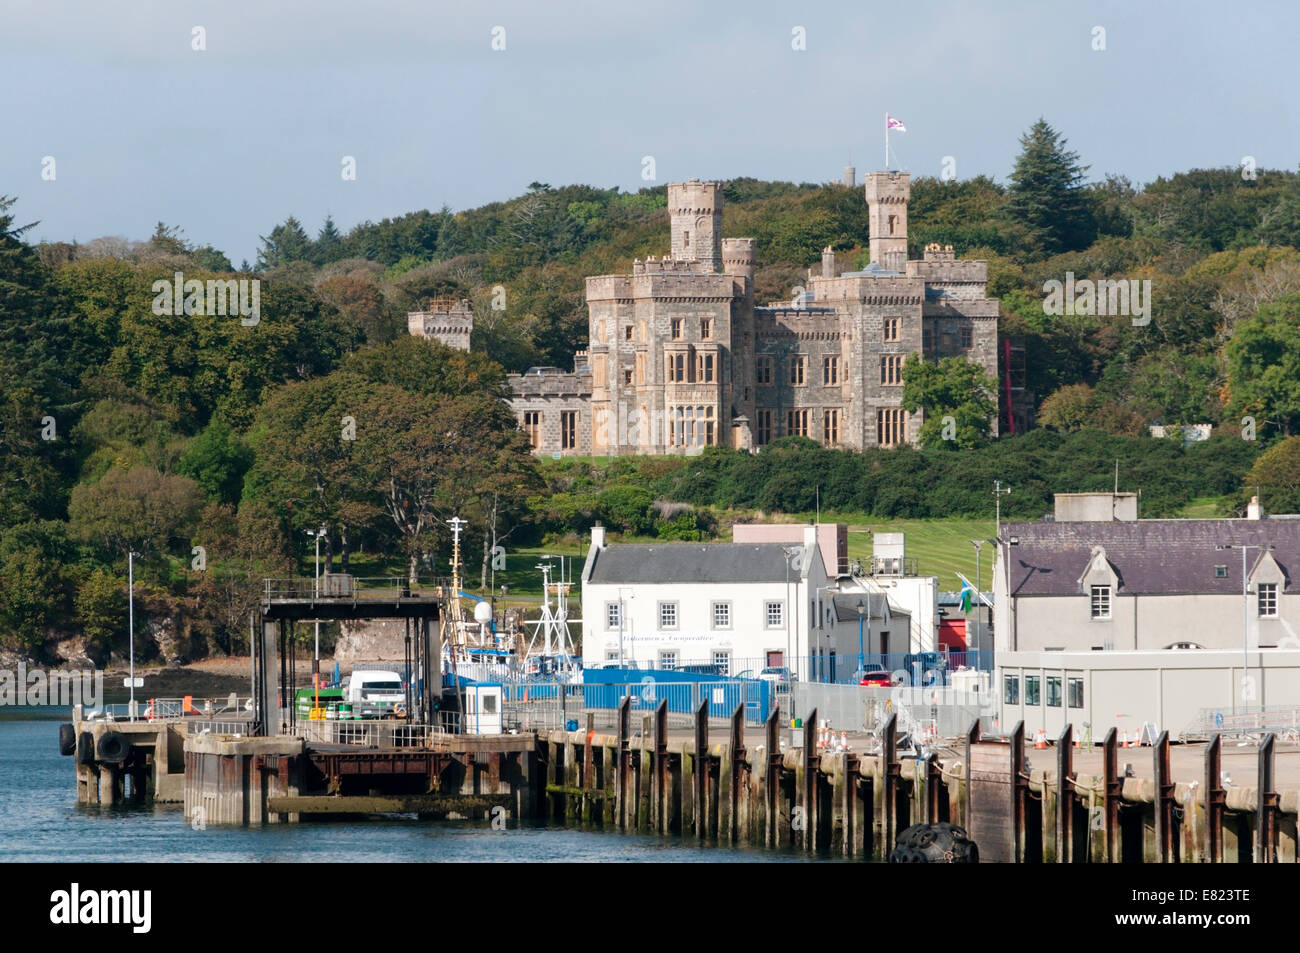 Castle Lews in Stornoway on the Isle of Lewis, Outer Hebrides. - Stock Image